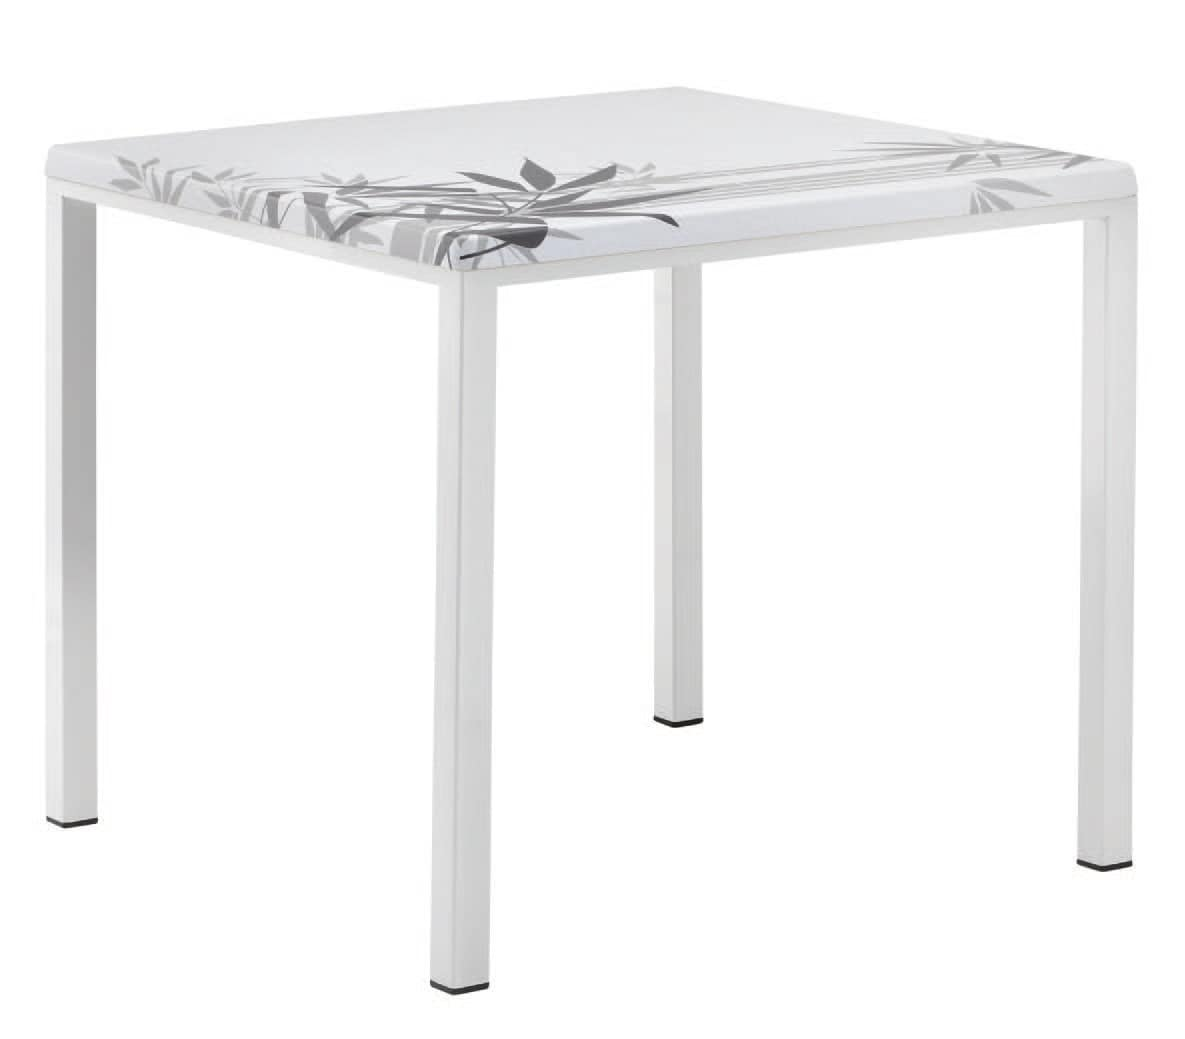 FT 044 square, Table with painted metal base ideal for bar